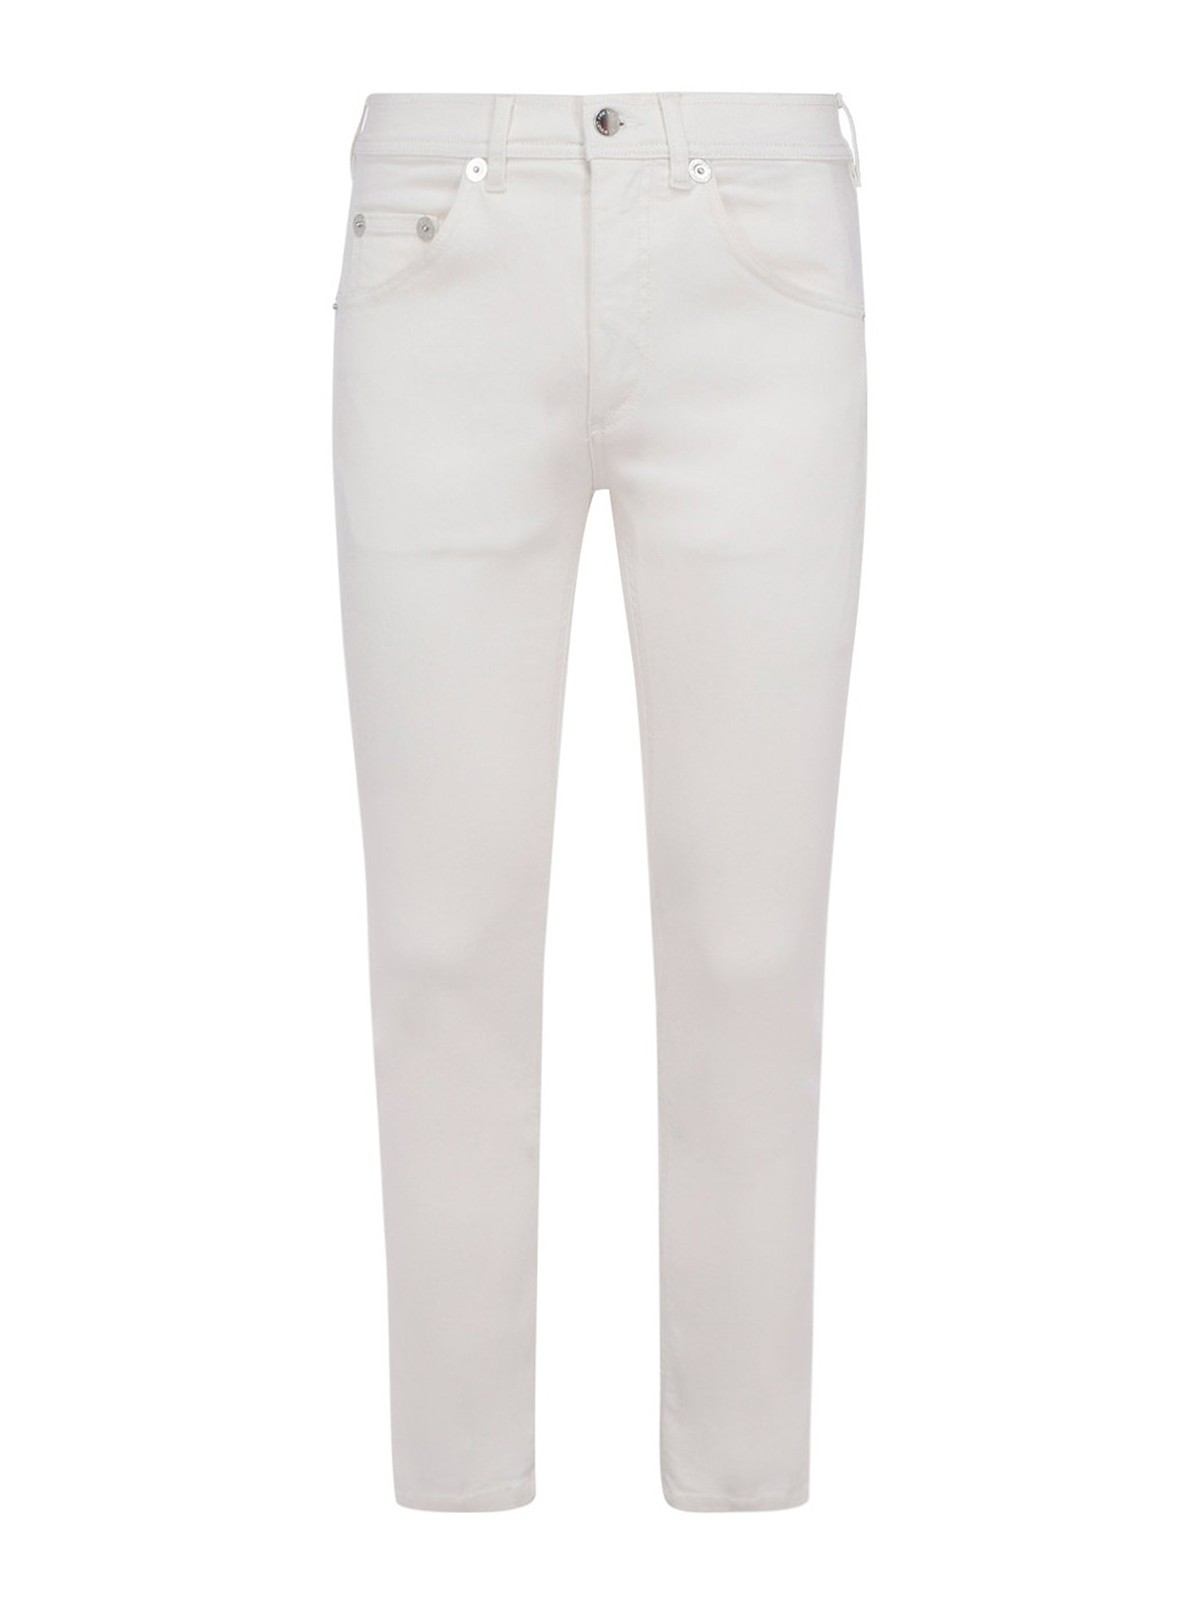 Neil Barrett STRETCH DENIM FIVE POCKET JEANS